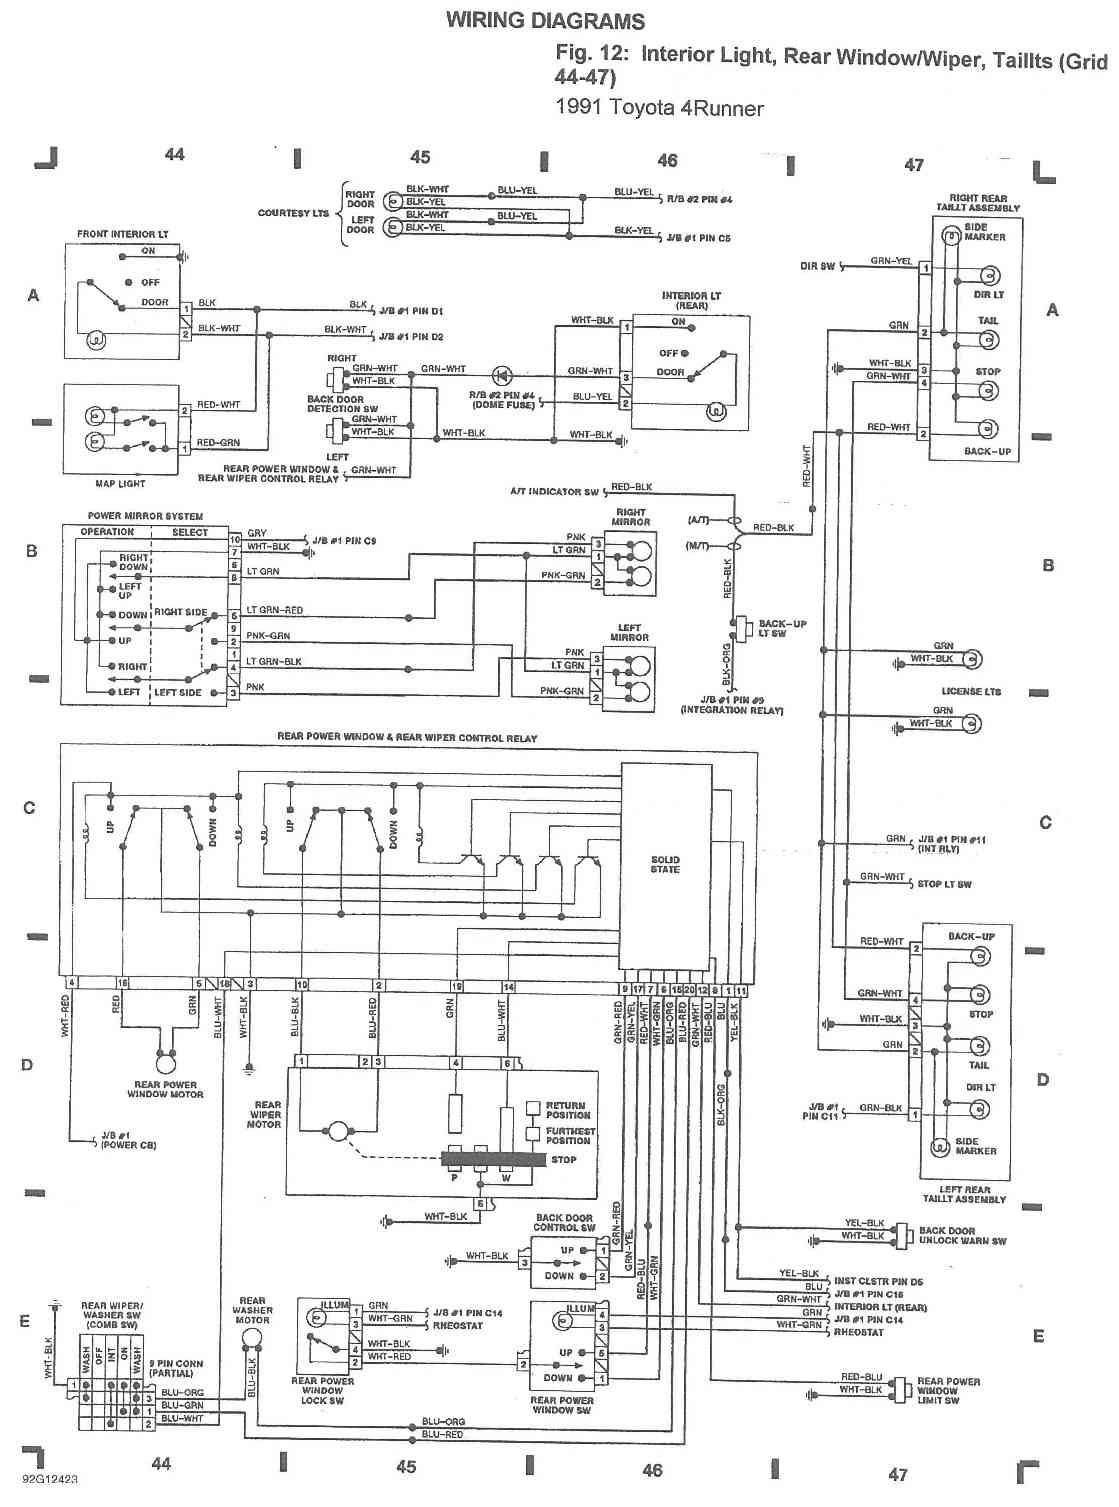 hight resolution of 92 toyota wiring diagram wiring diagrams 1992 toyota 4runner wiring diagram 1992 toyota 4runner wiring diagram